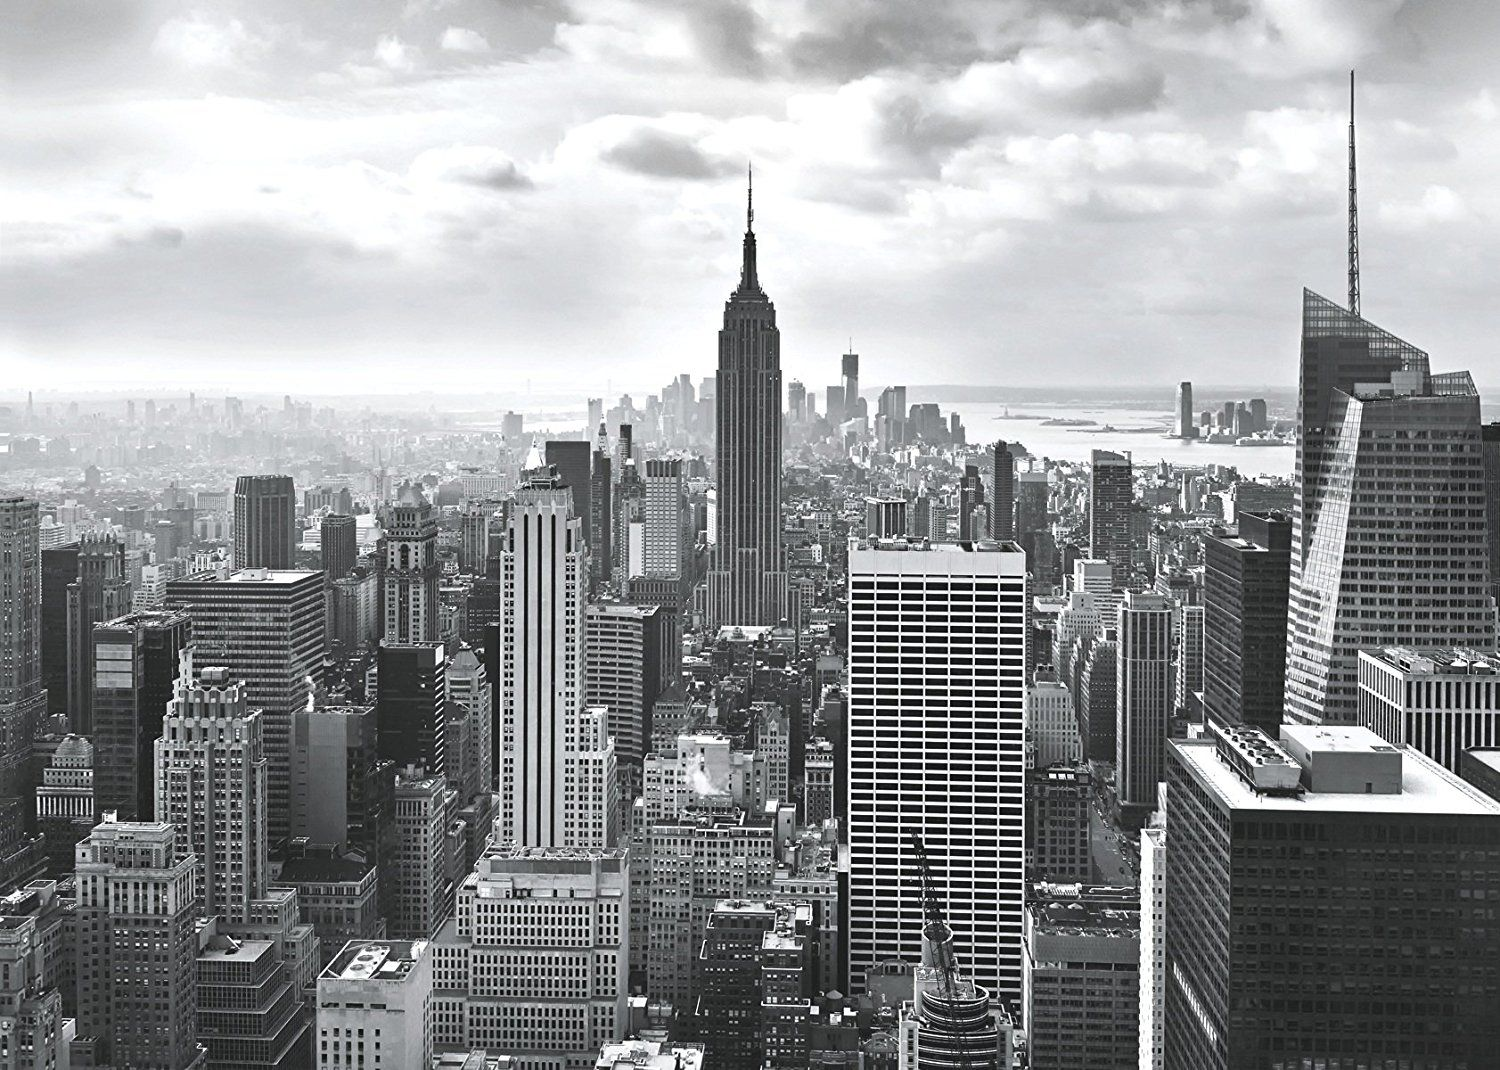 wall mural new york city skyline photo wallpaper black whitedetails about wall mural new york city skyline photo wallpaper black white 368x254cm adhesive